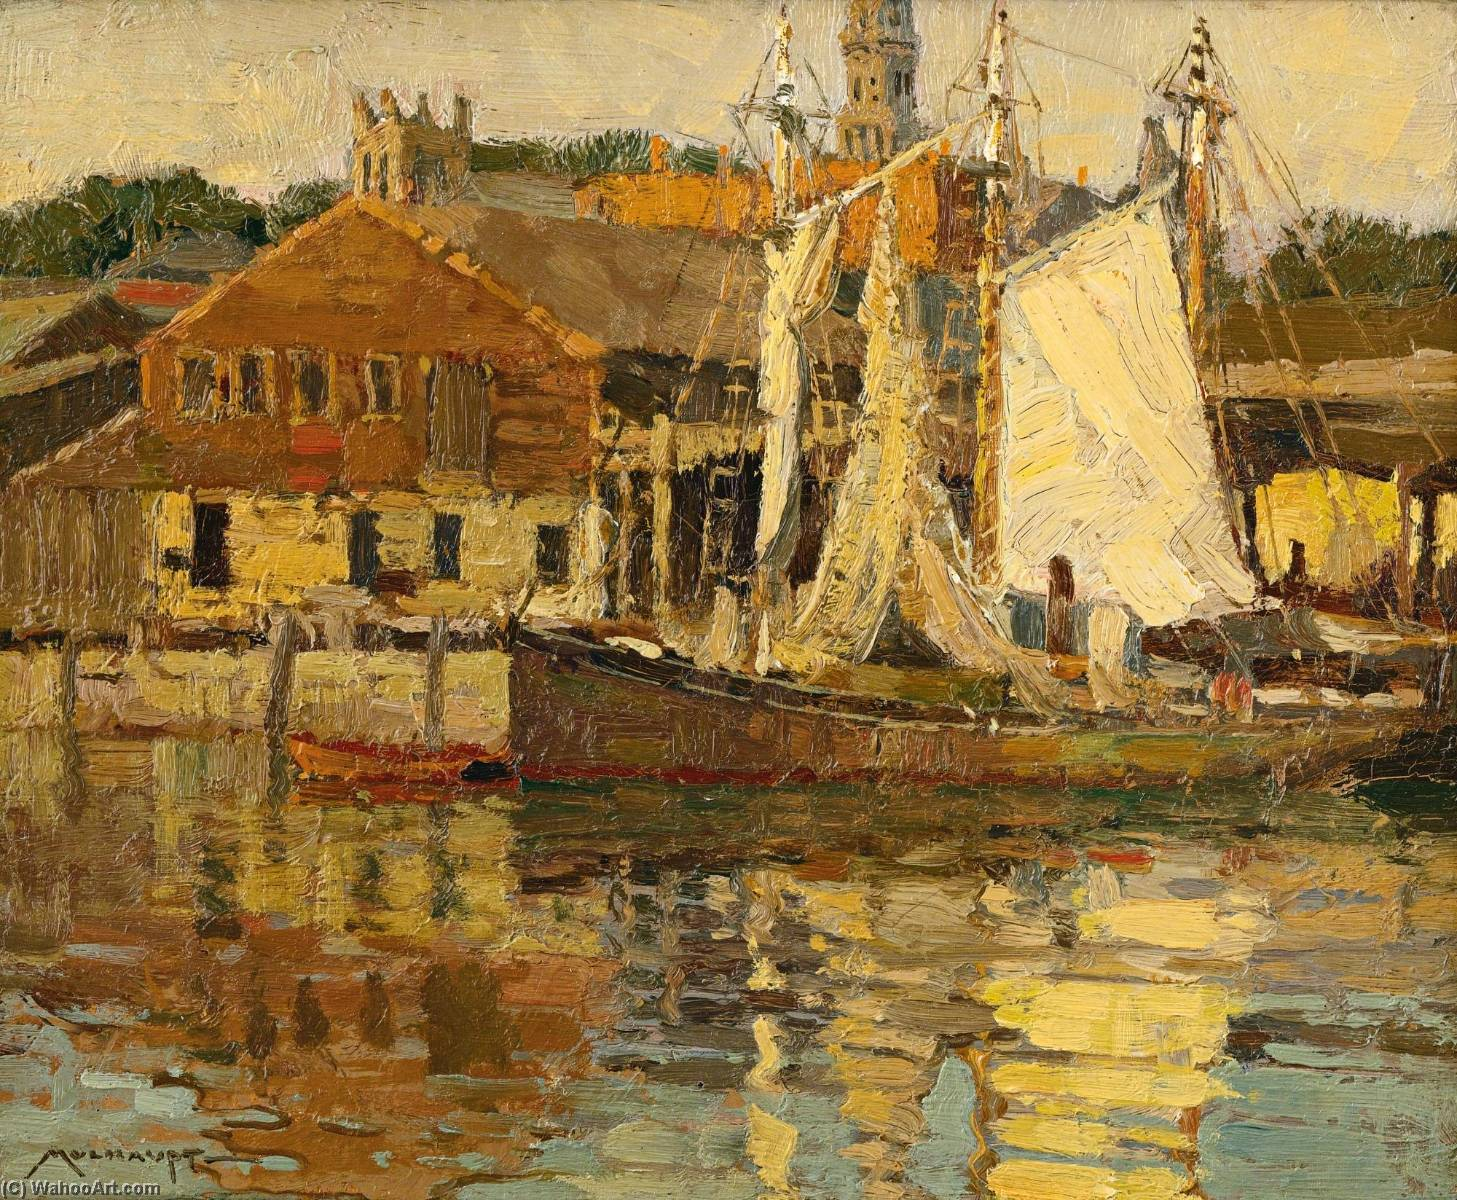 Atlantis Wharf, Gloucester, Massachusetts by Frederick John Mulhaupt | Reproductions Frederick John Mulhaupt | WahooArt.com